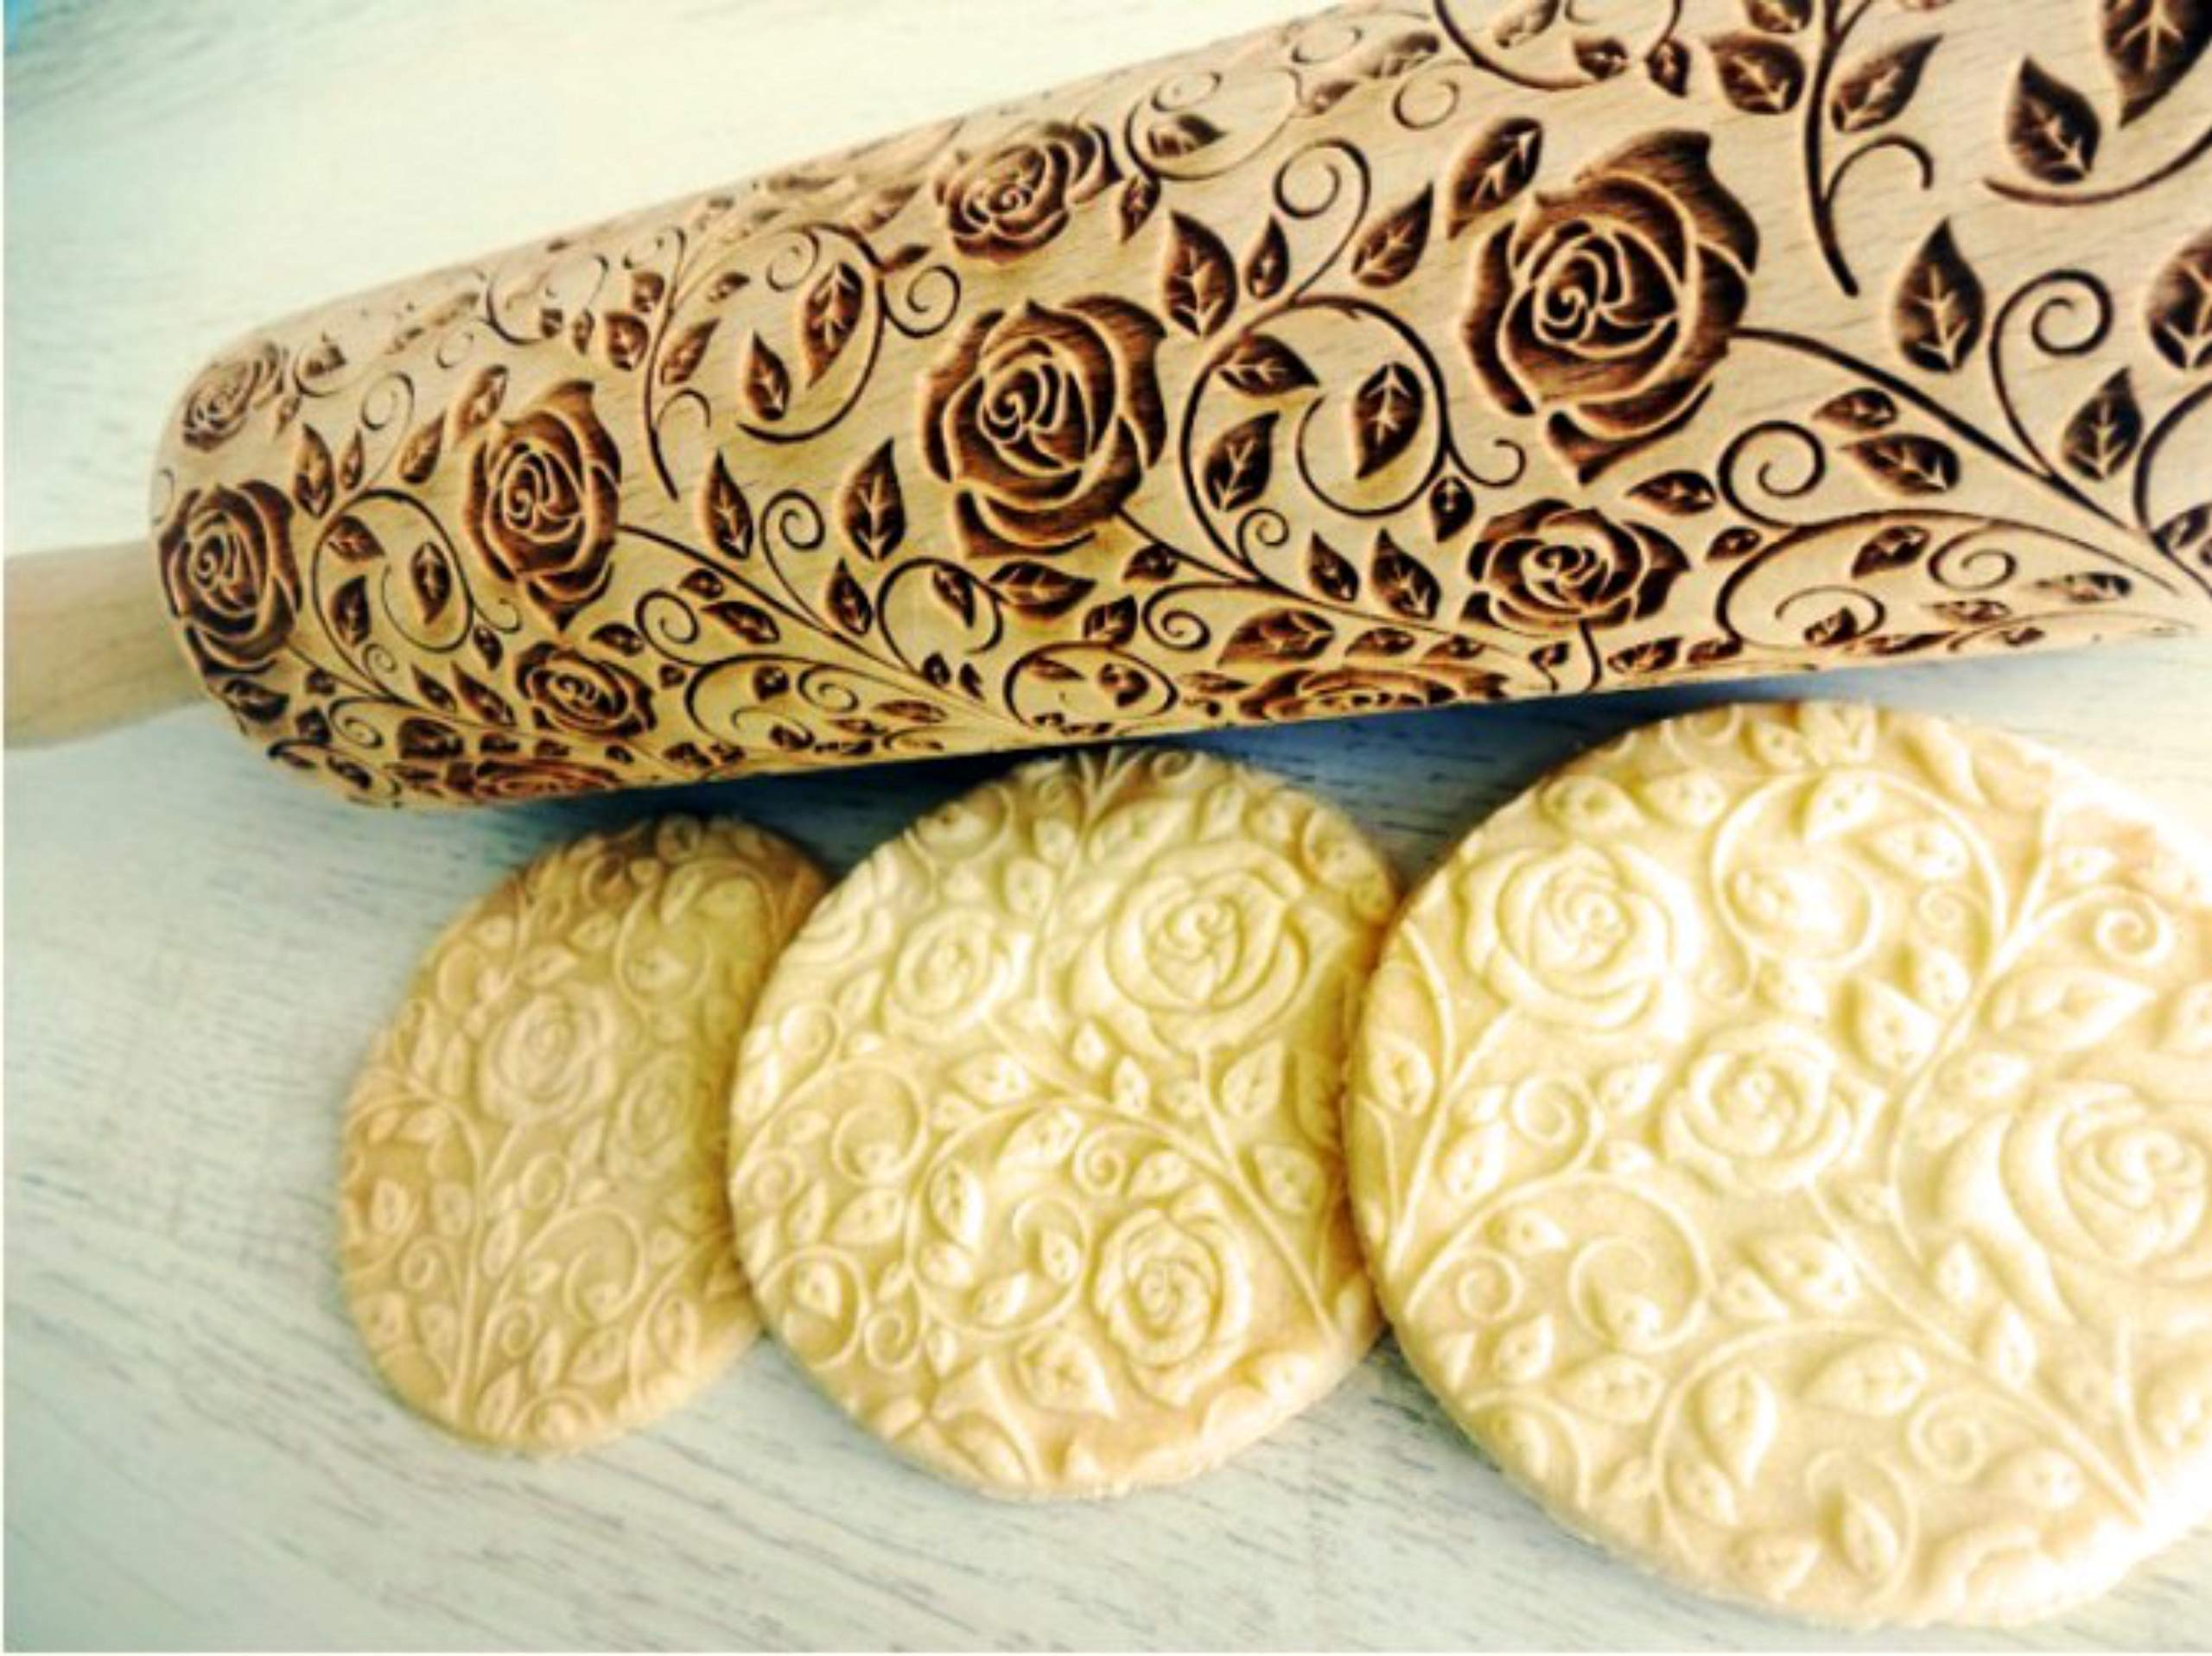 Damascus Roses embossing rolling pin. Wooden embossing rolling pin with Rose. Roses wreath. Flower rose. by Sun Crafts